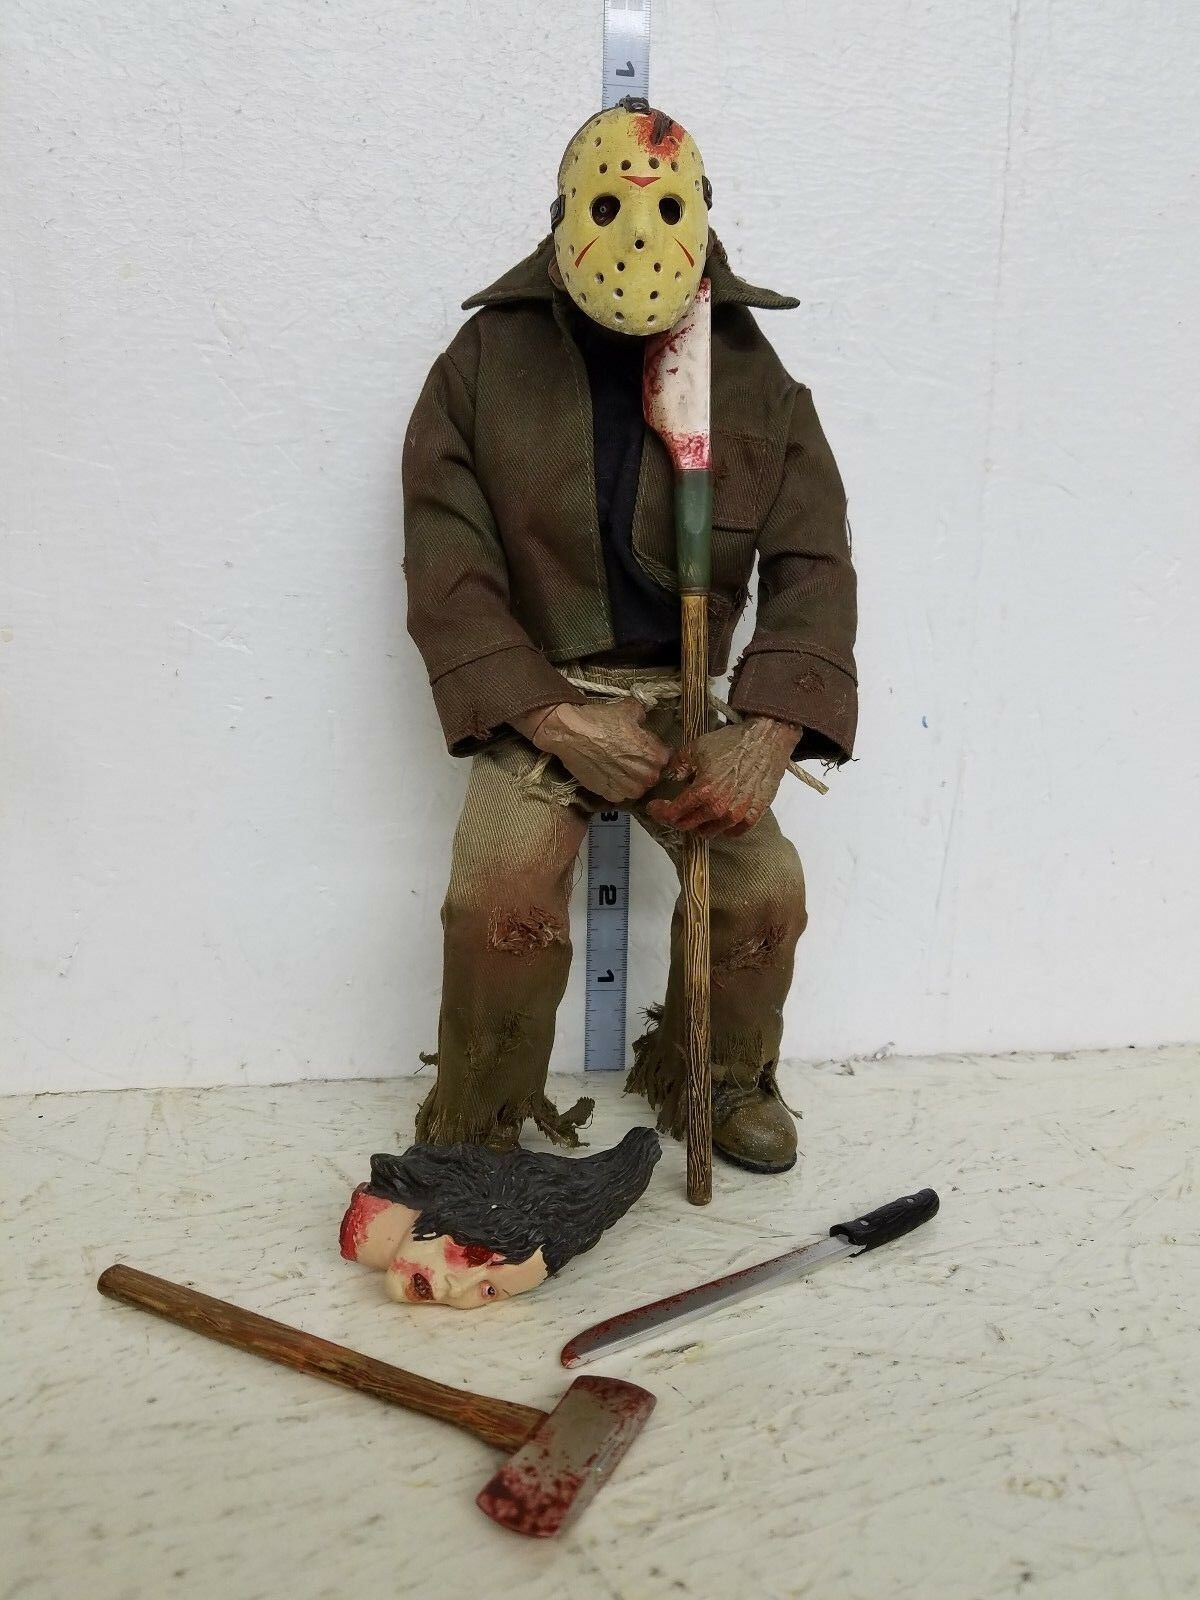 Mezco cinema of fear friday the 13th Jason Voorhees Figure 10 in (environ 25.40 cm) loose